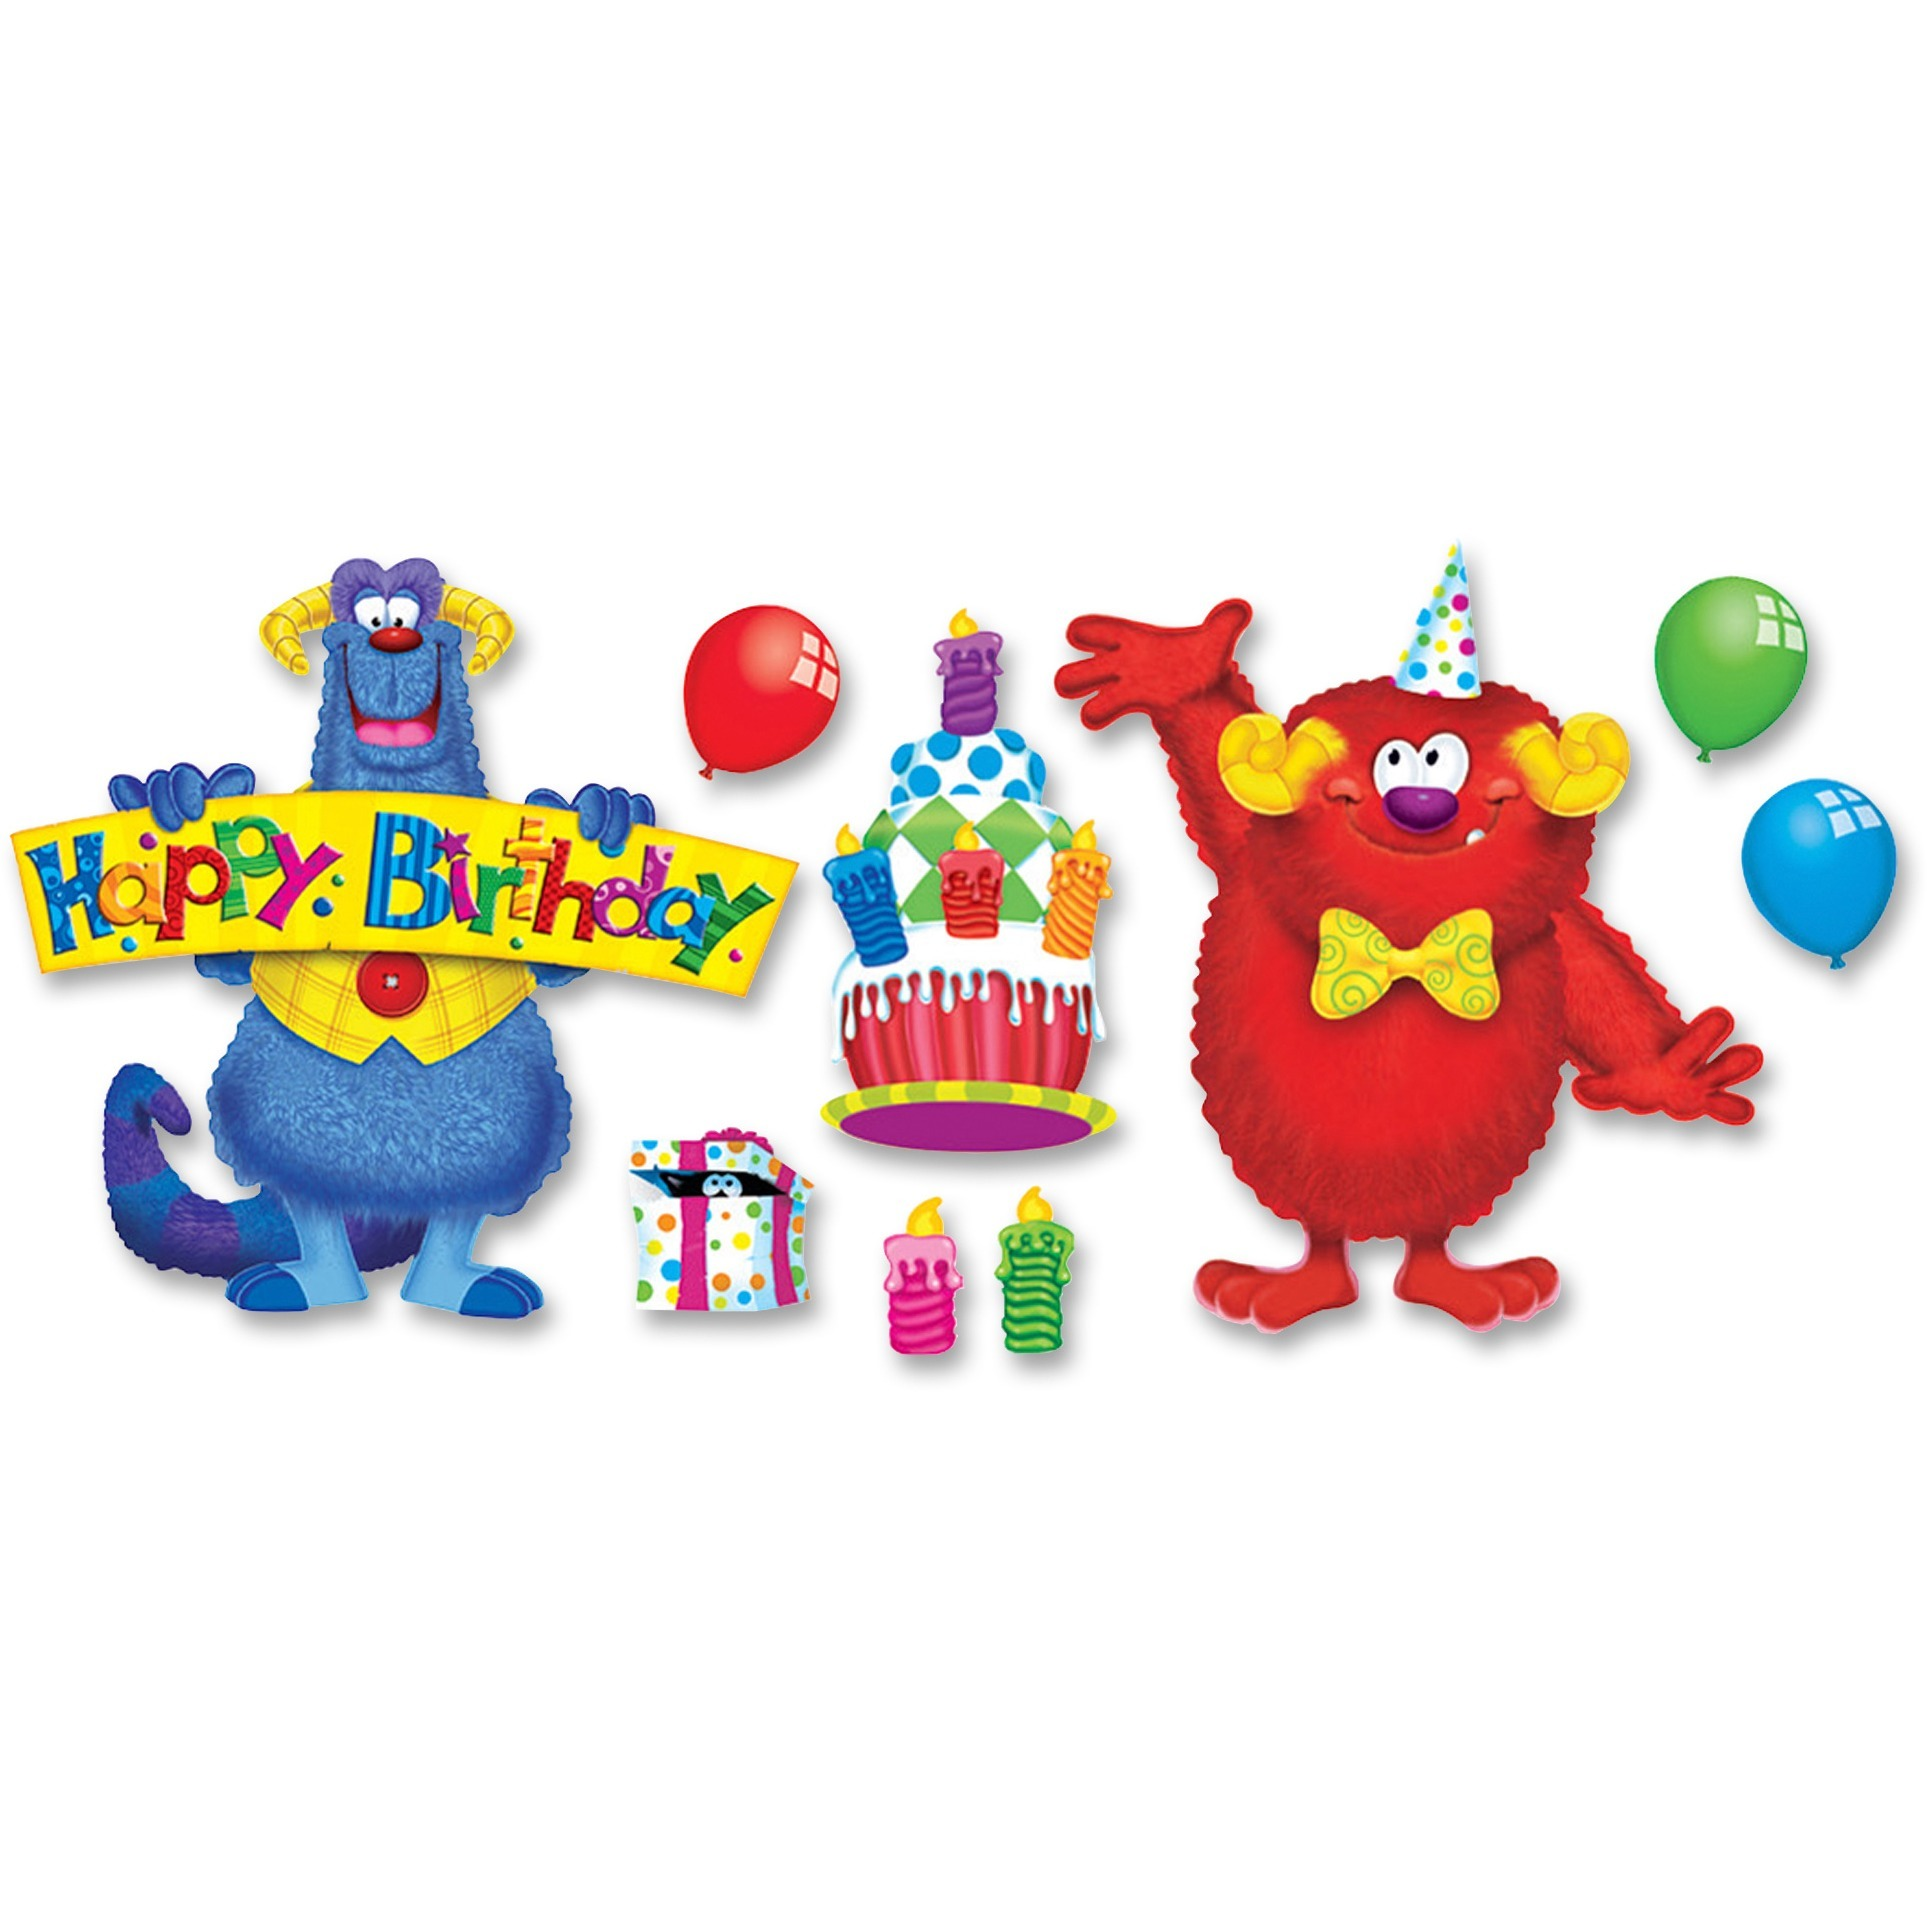 Trend, TEPT8311, Furry Friends Birthday Fun Bulletin Board Set, 1 / Set, Assorted